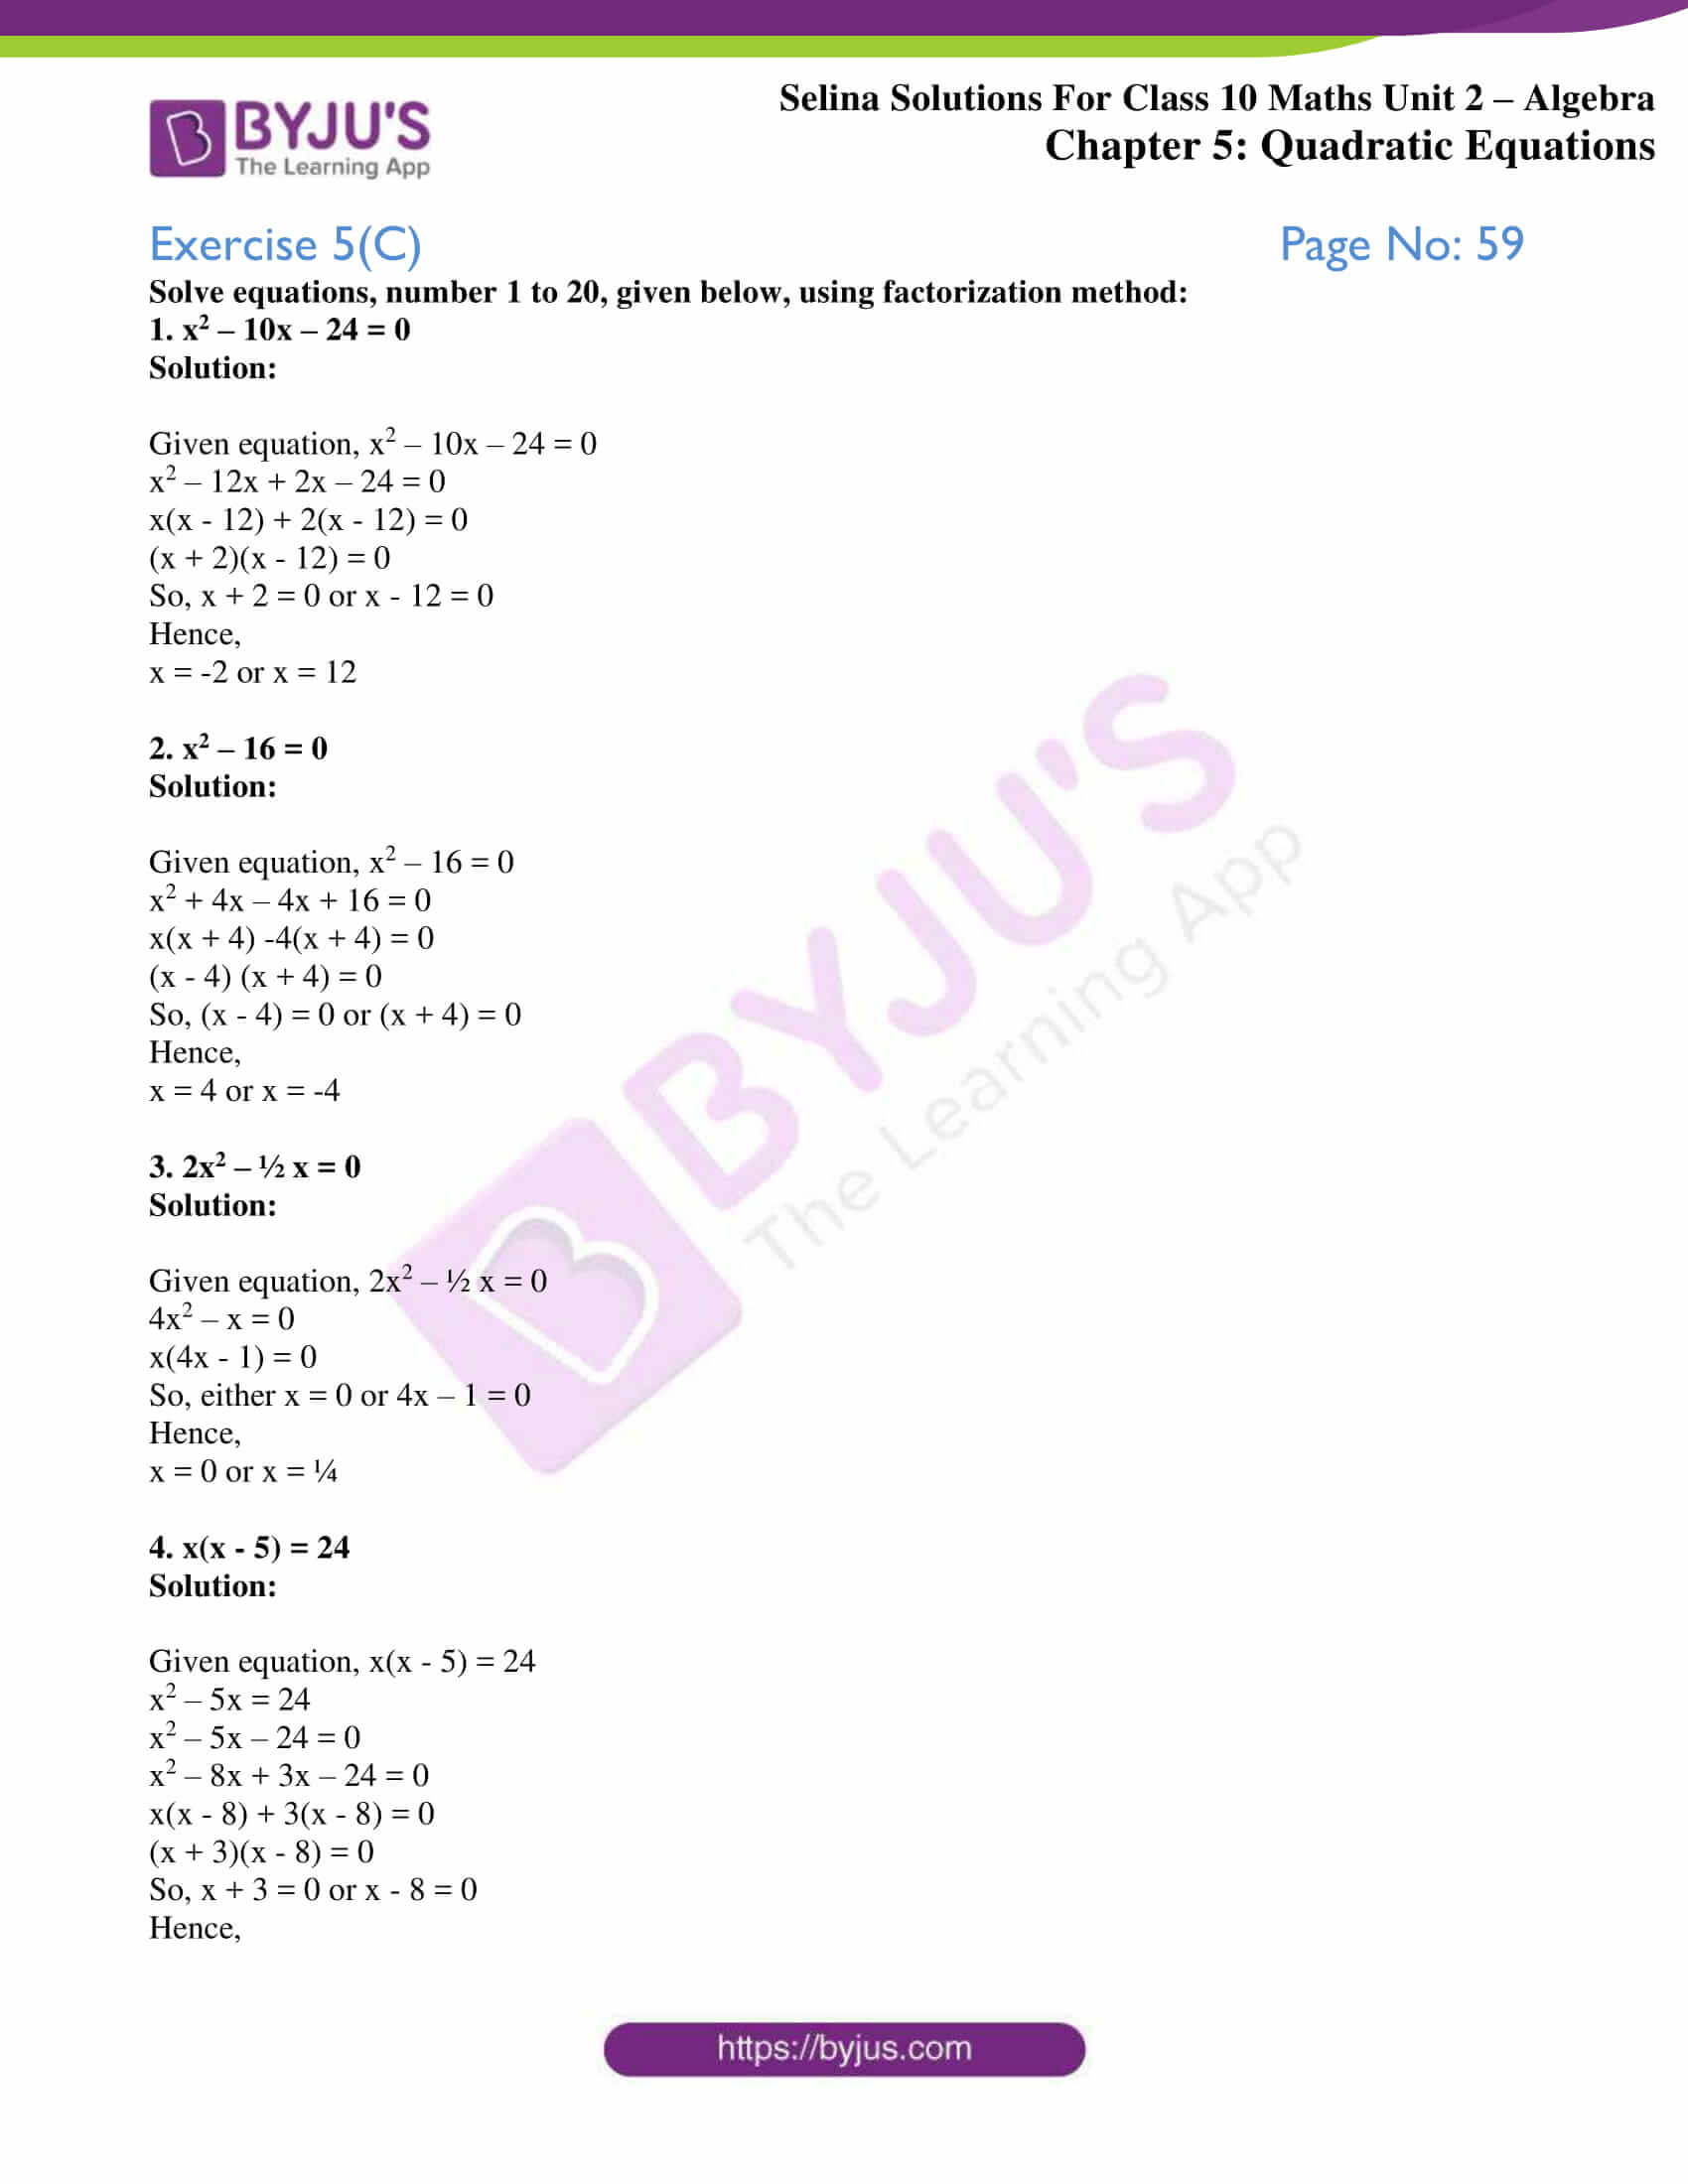 selina solution concise maths class 10 chapter 5c